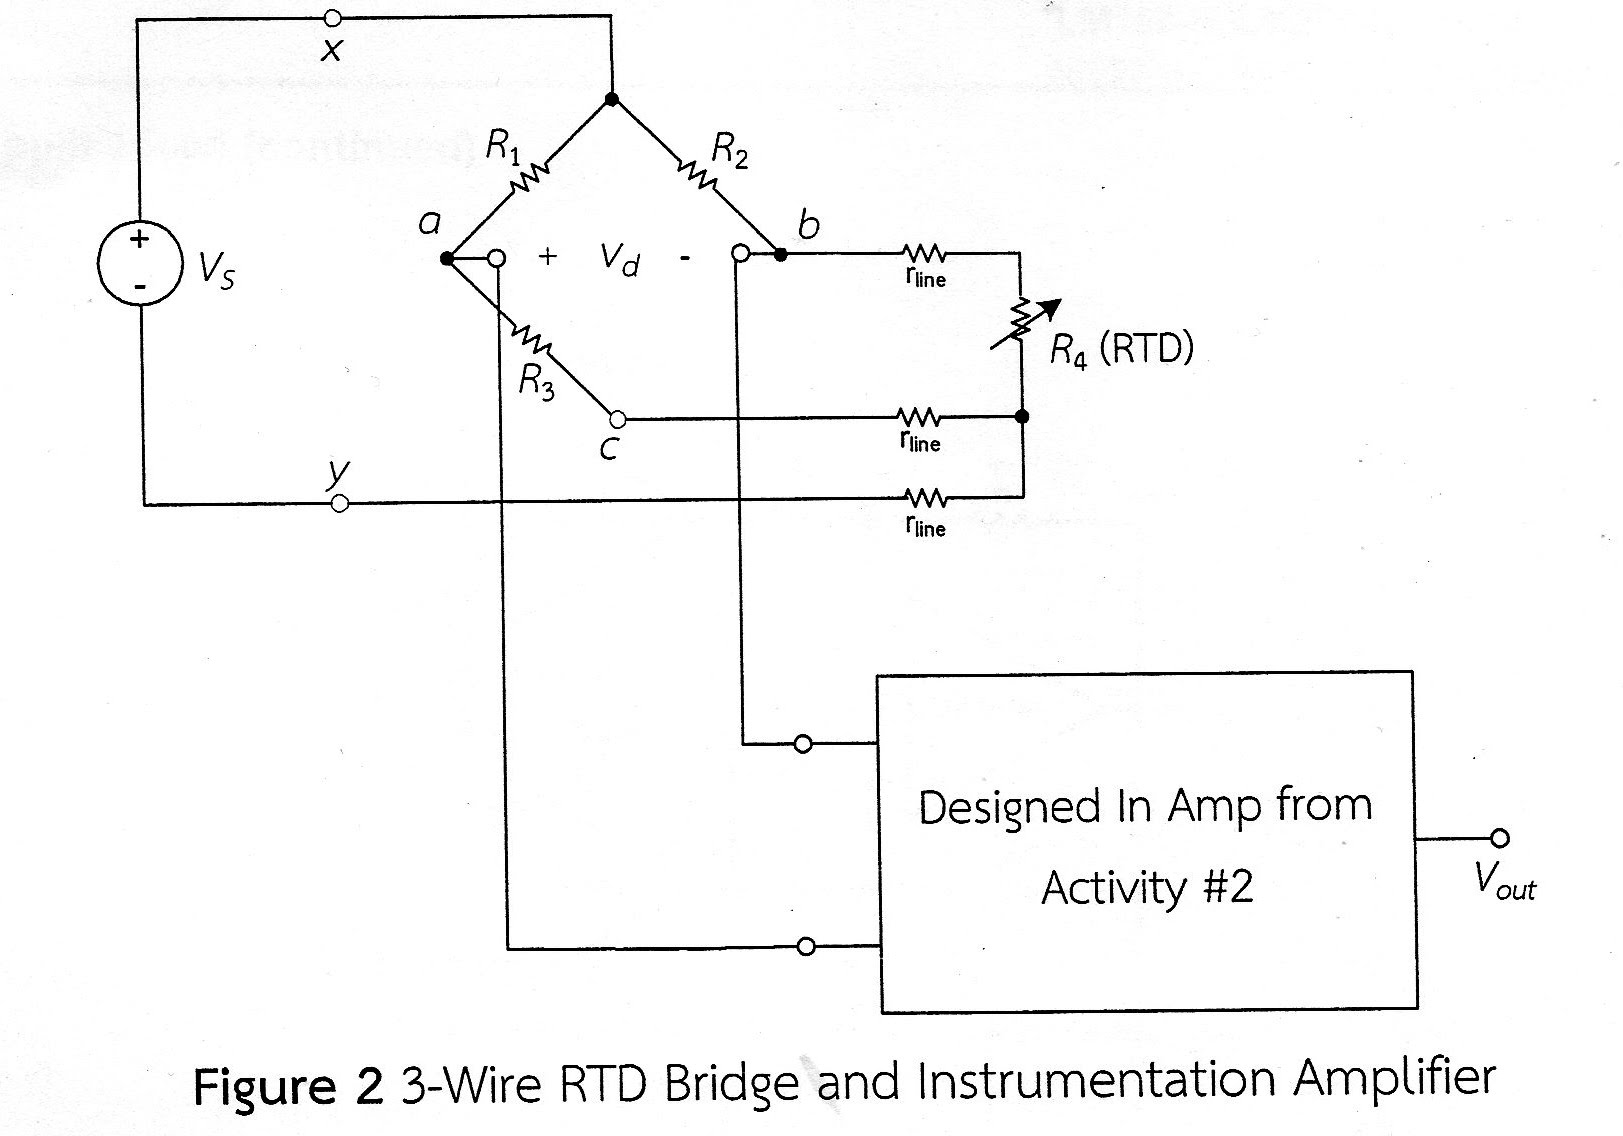 hight resolution of build the circuit in figure 2 by soldering all devices except the rrtd on the stripboard